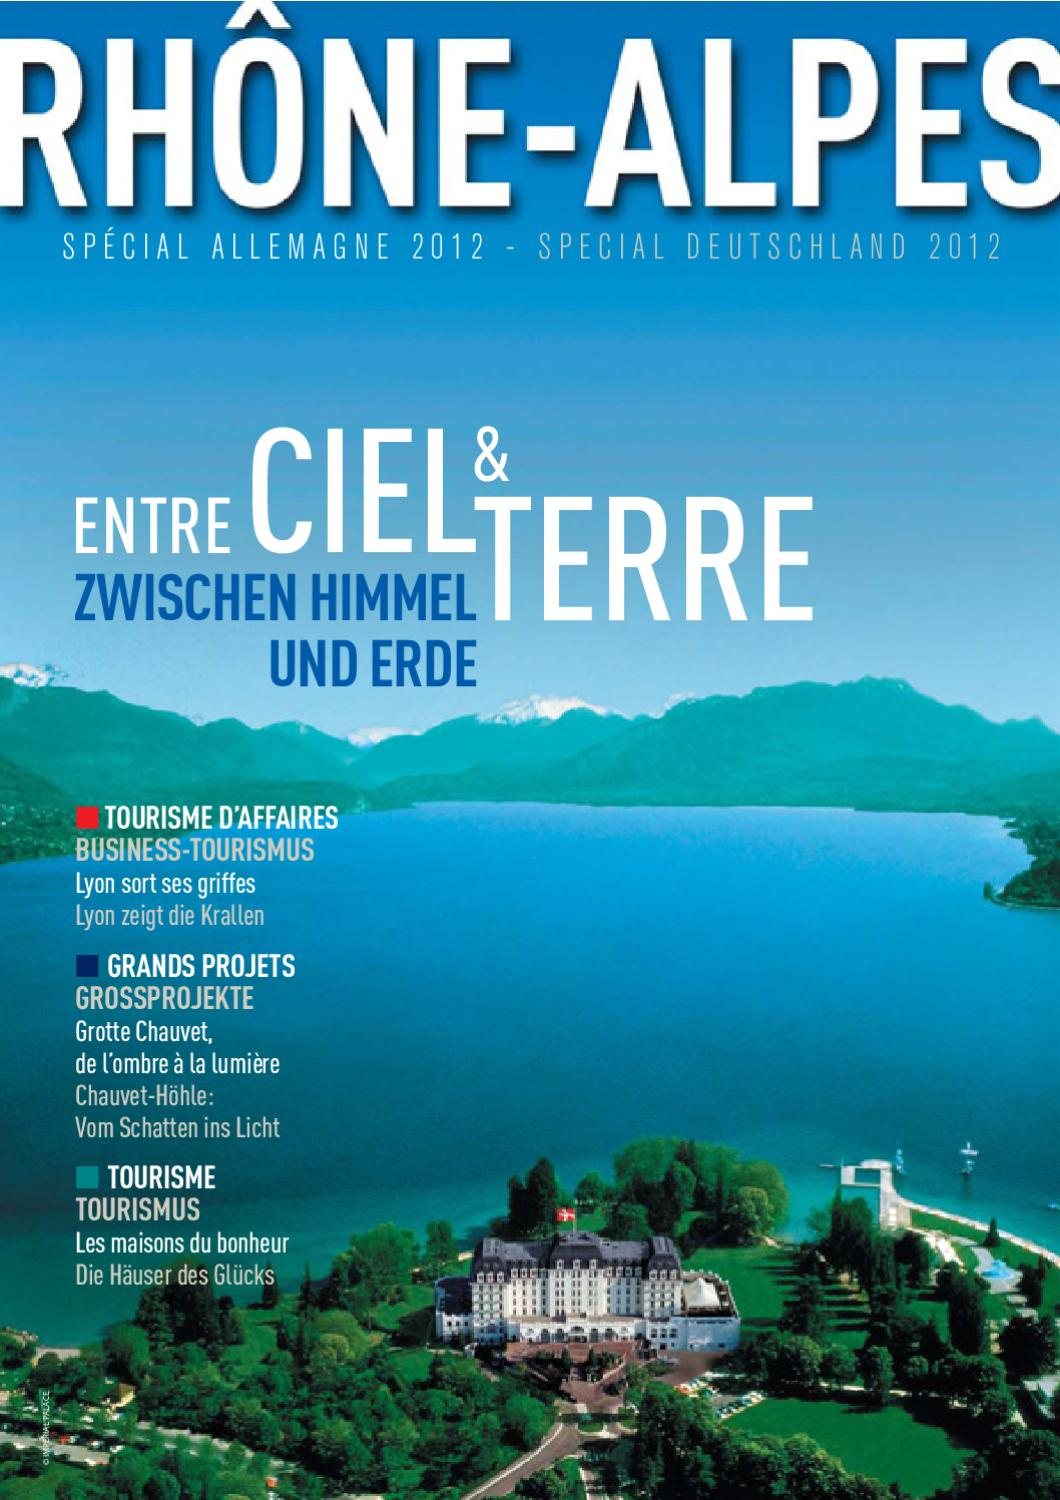 Magazine CRT Allemagne by pascal auclair - issuu